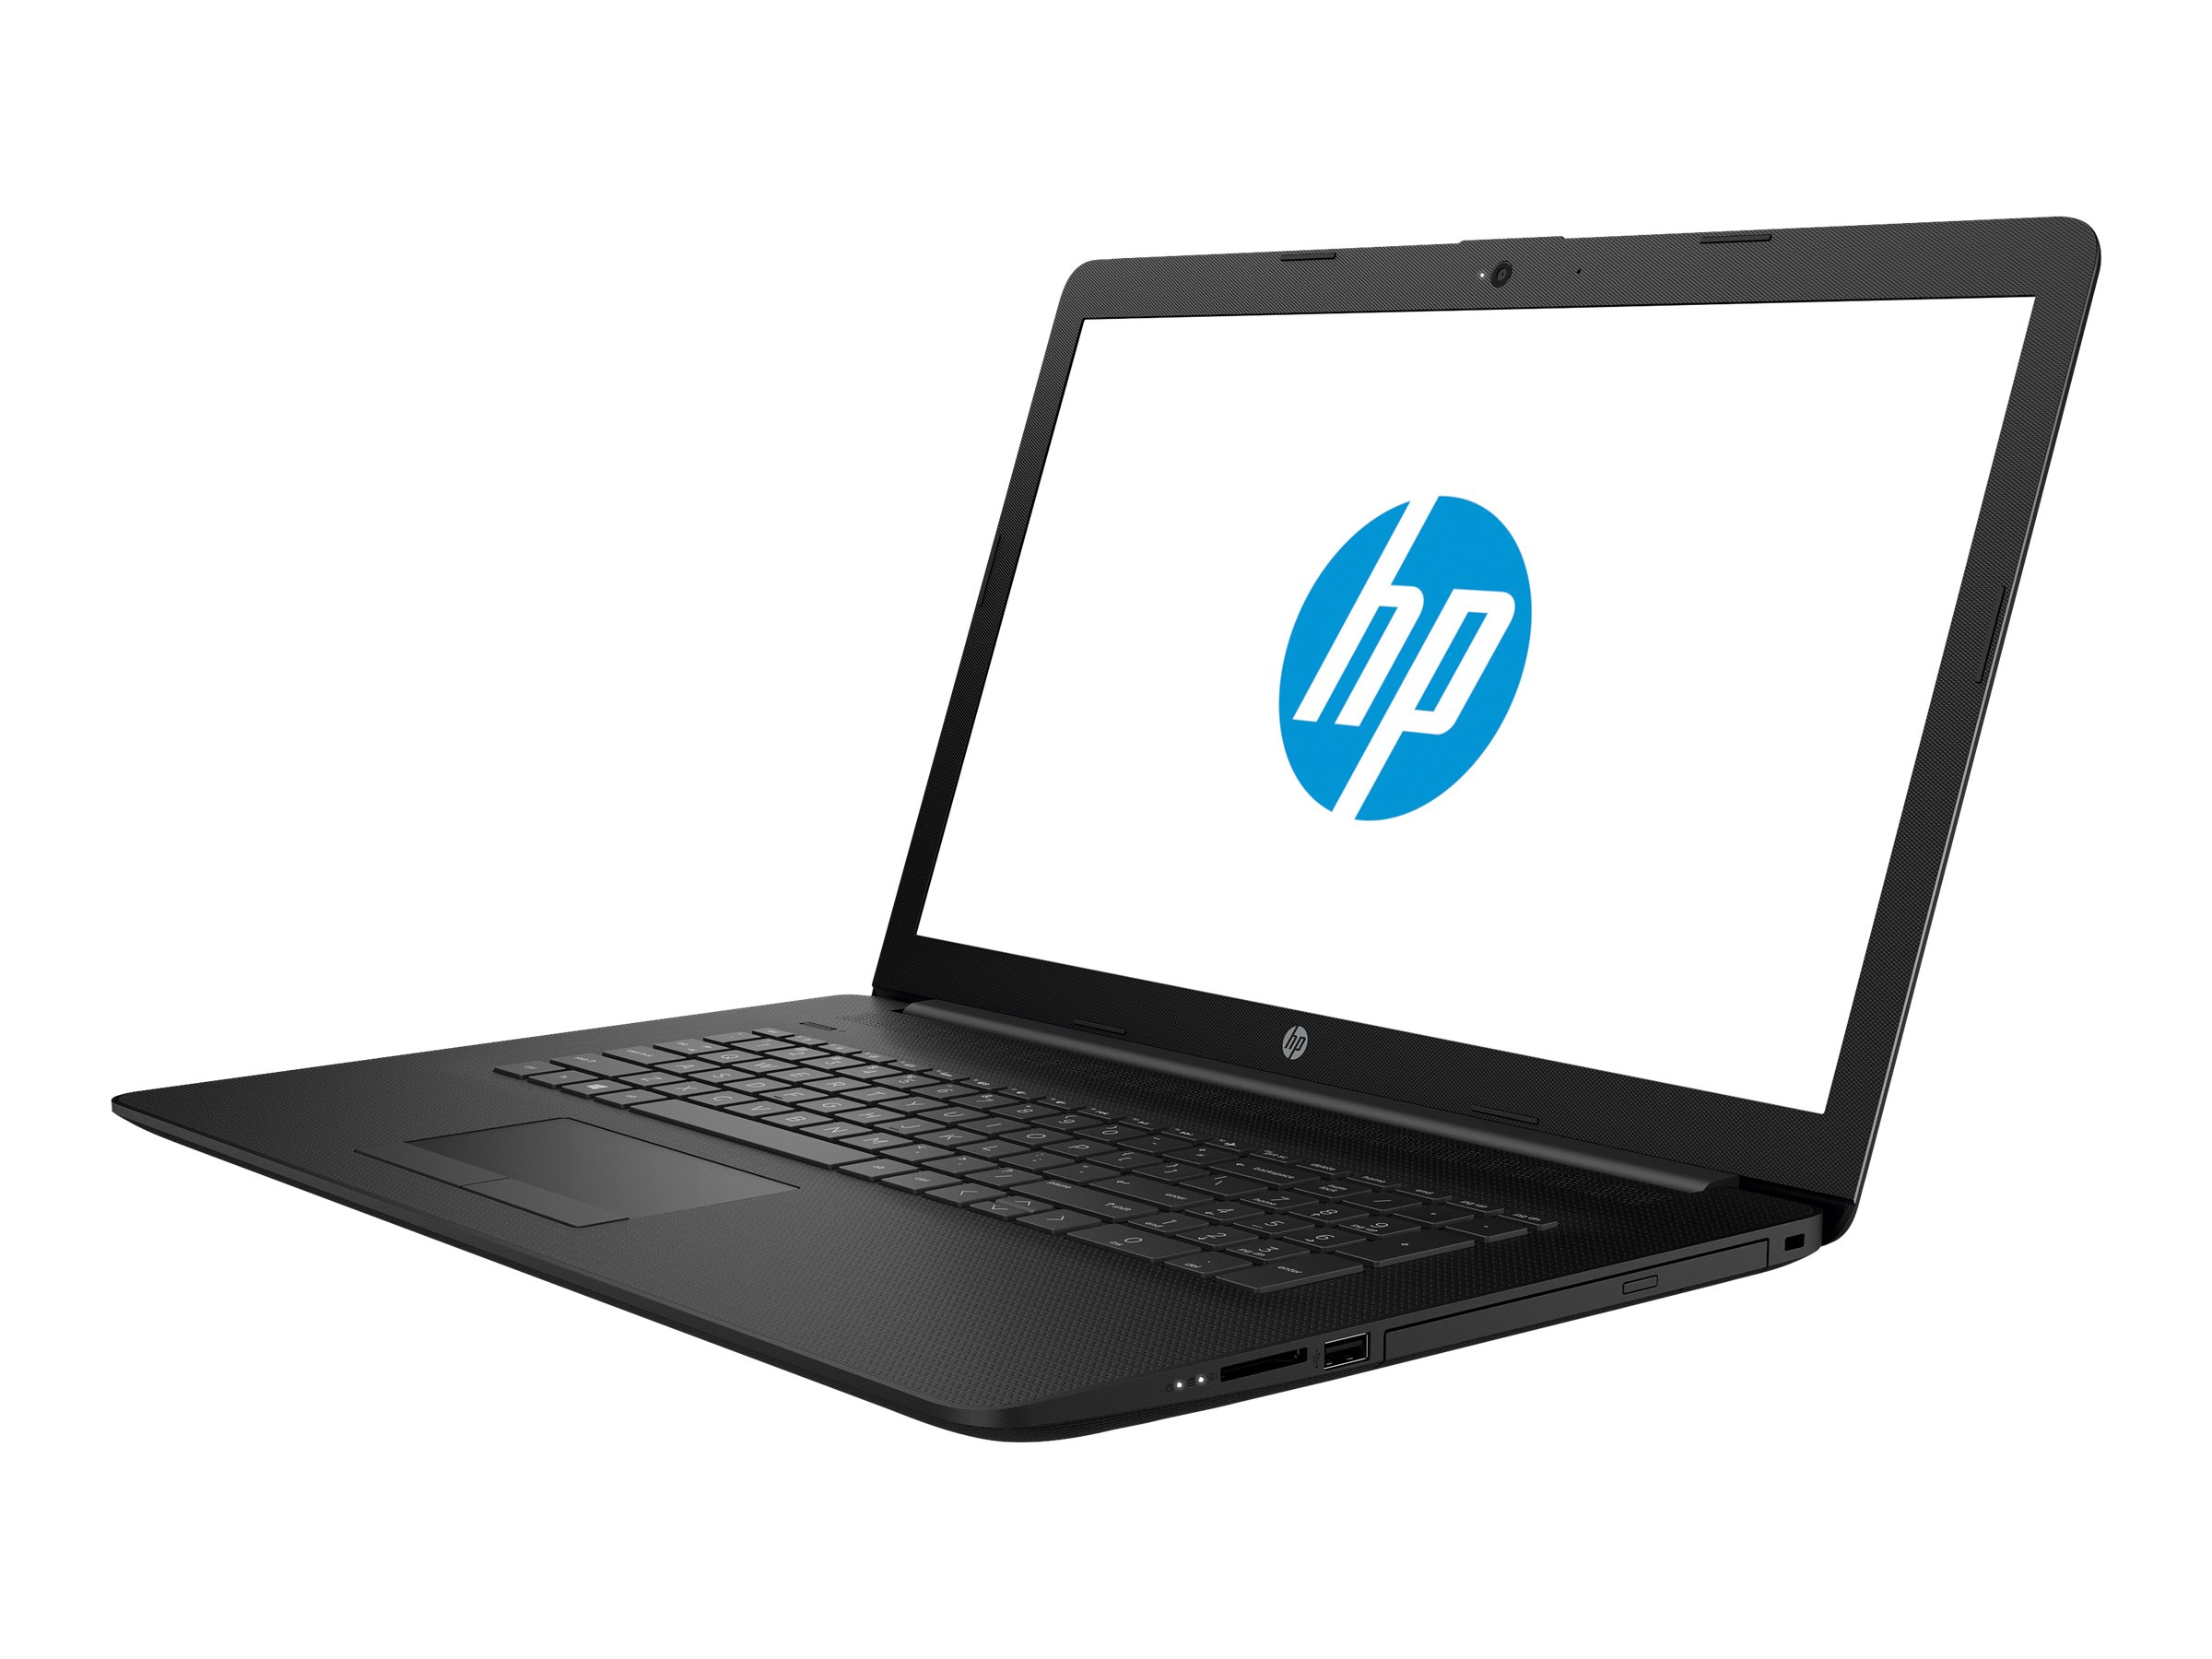 HP 17-ca1400ng - Ryzen 3 3200U / 2.6 GHz - Win 10 Home 64-Bit - 8 GB RAM - 256 GB SSD NVMe - DVD-Writer - 43.9 cm (17.3""